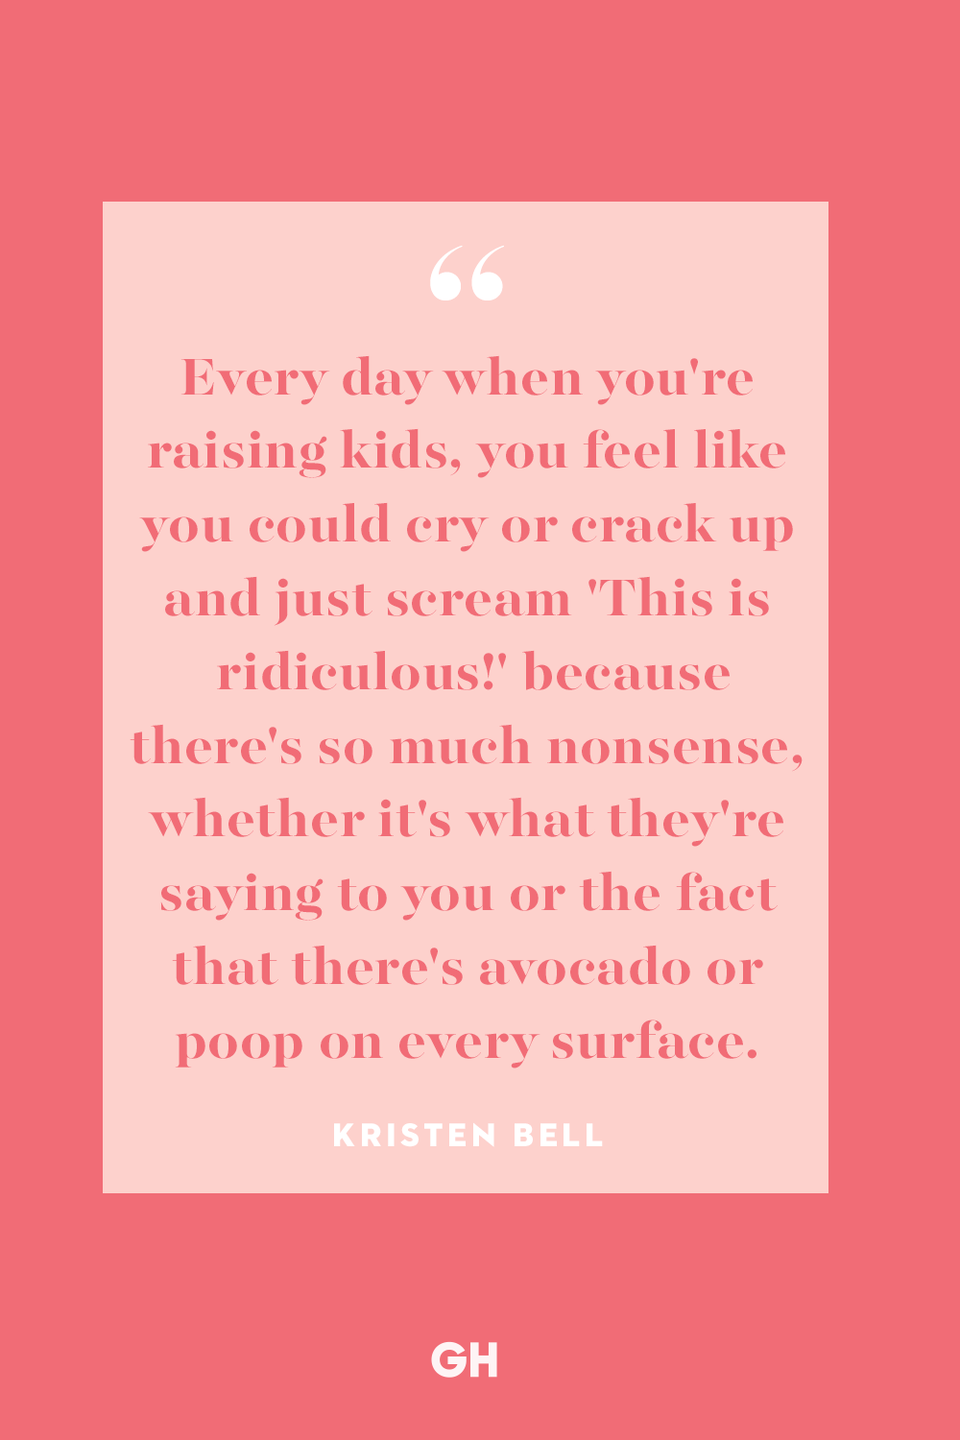 <p>Every day when you're raising kids, you feel like you could cry or crack up and just scream 'This is ridiculous!' because there's so much nonsense, whether it's what they're saying to you or the fact that there's avocado or poop on every surface.</p>